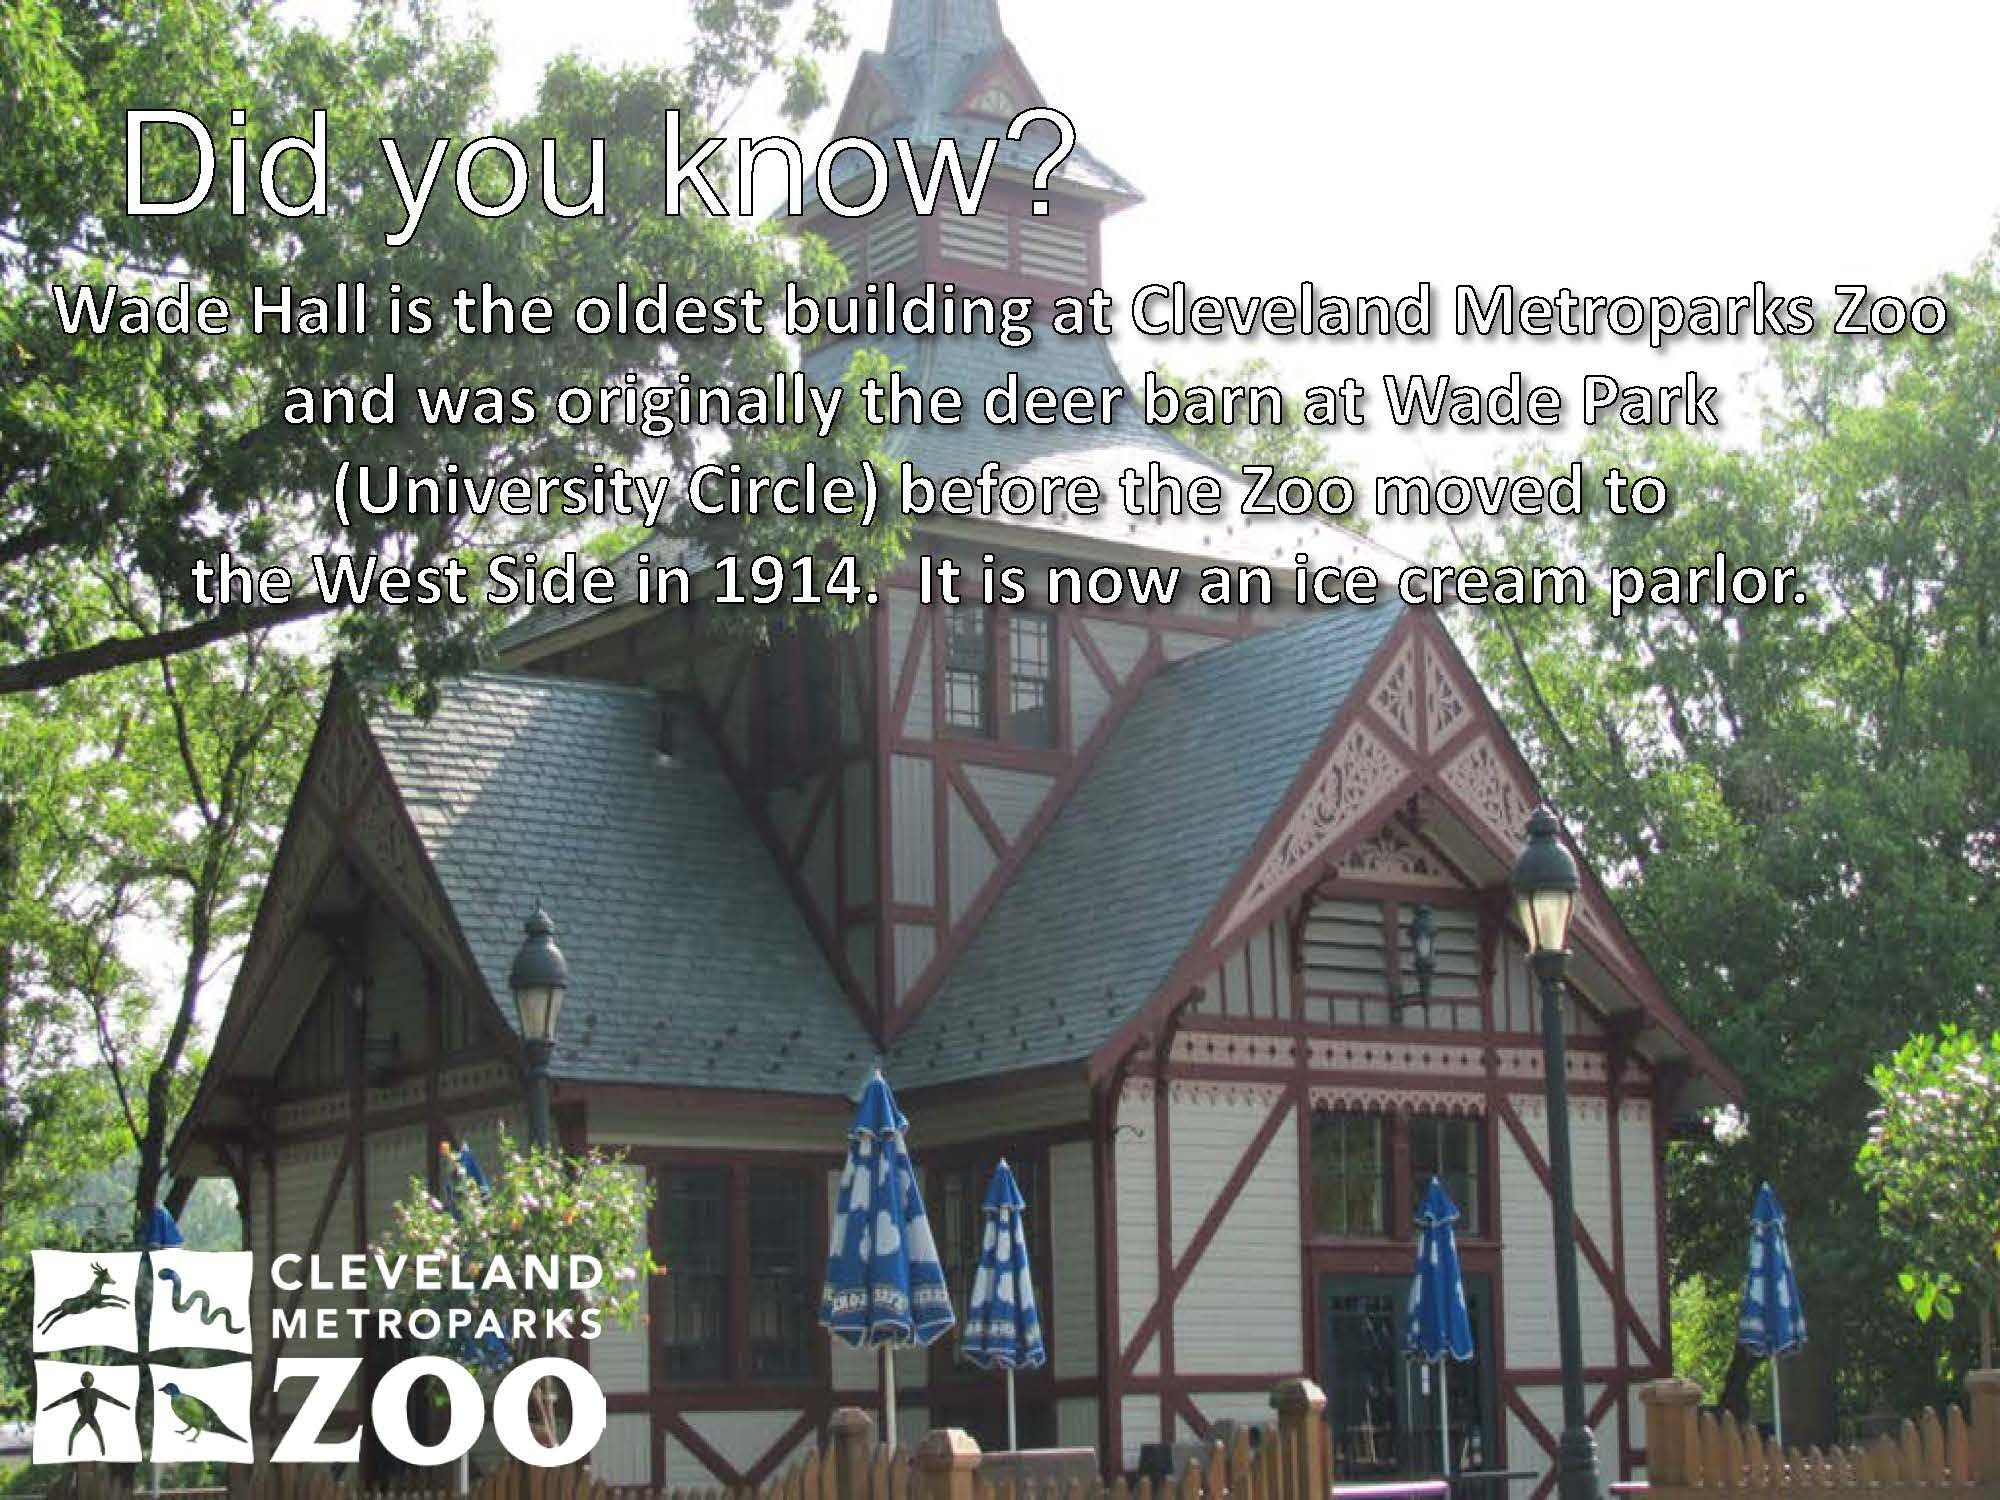 Wade Hall Is The Oldest Building At Cleveland Metroparks Zoo And Was Originally The Deer Barn At Wade Park U With Images Cleveland Metroparks Old Buildings Cleveland Ohio